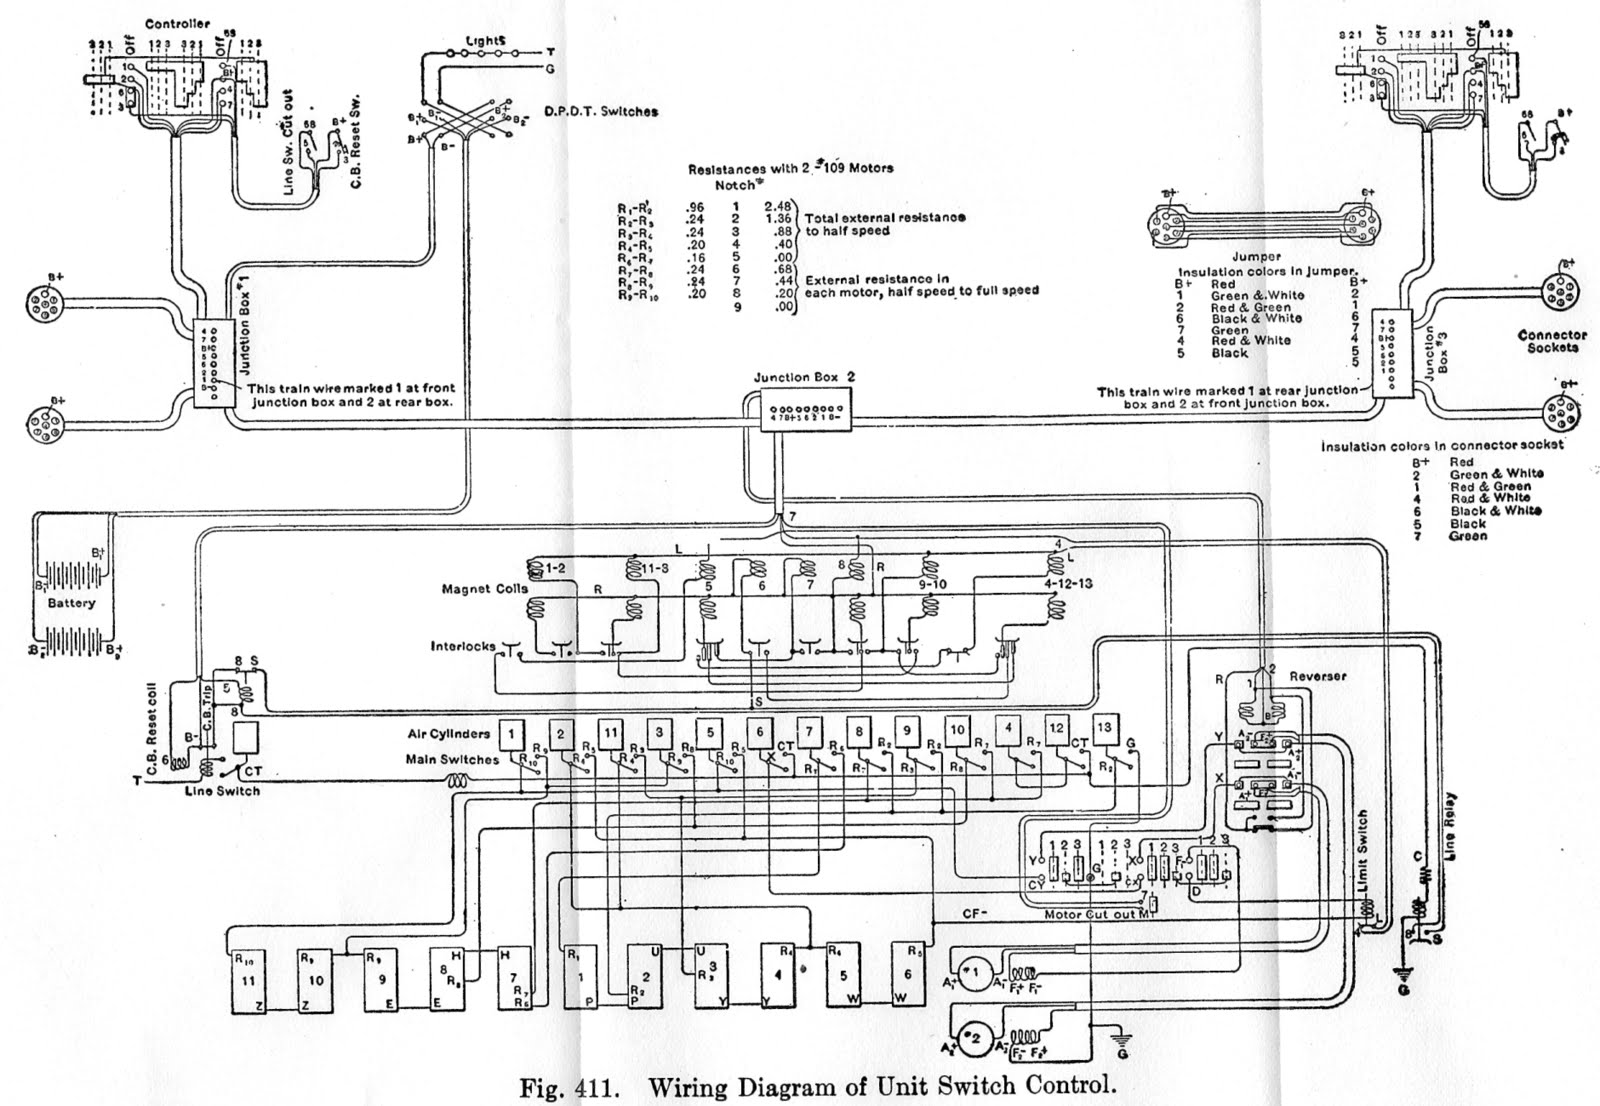 Westinghouse%2BAB.tif hicks car works control circuit diagrams westinghouse electric motor wiring diagrams at eliteediting.co